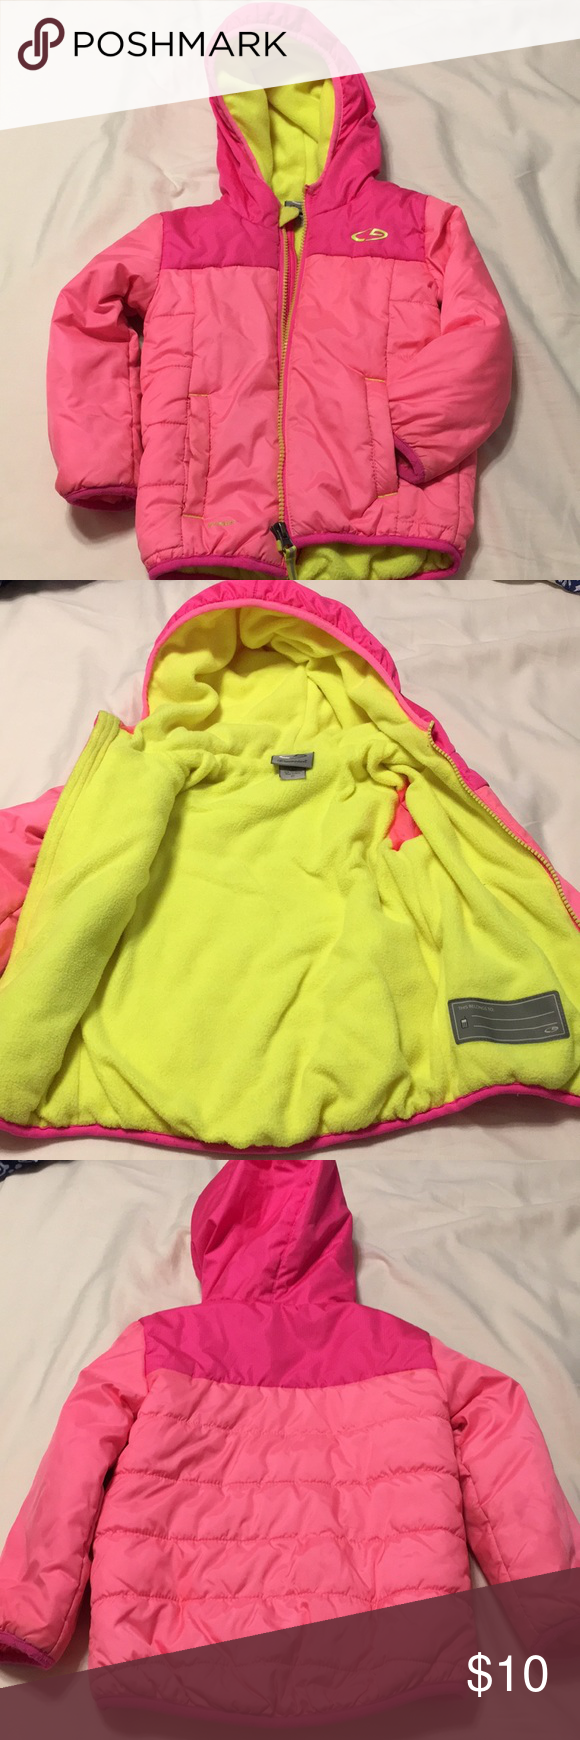 Toddler Puffer Jacket Nice And Cozy Puffer Jacket It S In Great Shape No Major Stains Or Damage See Picture Zipper Jackets Champion Jacket Puffer Jackets [ 1740 x 580 Pixel ]